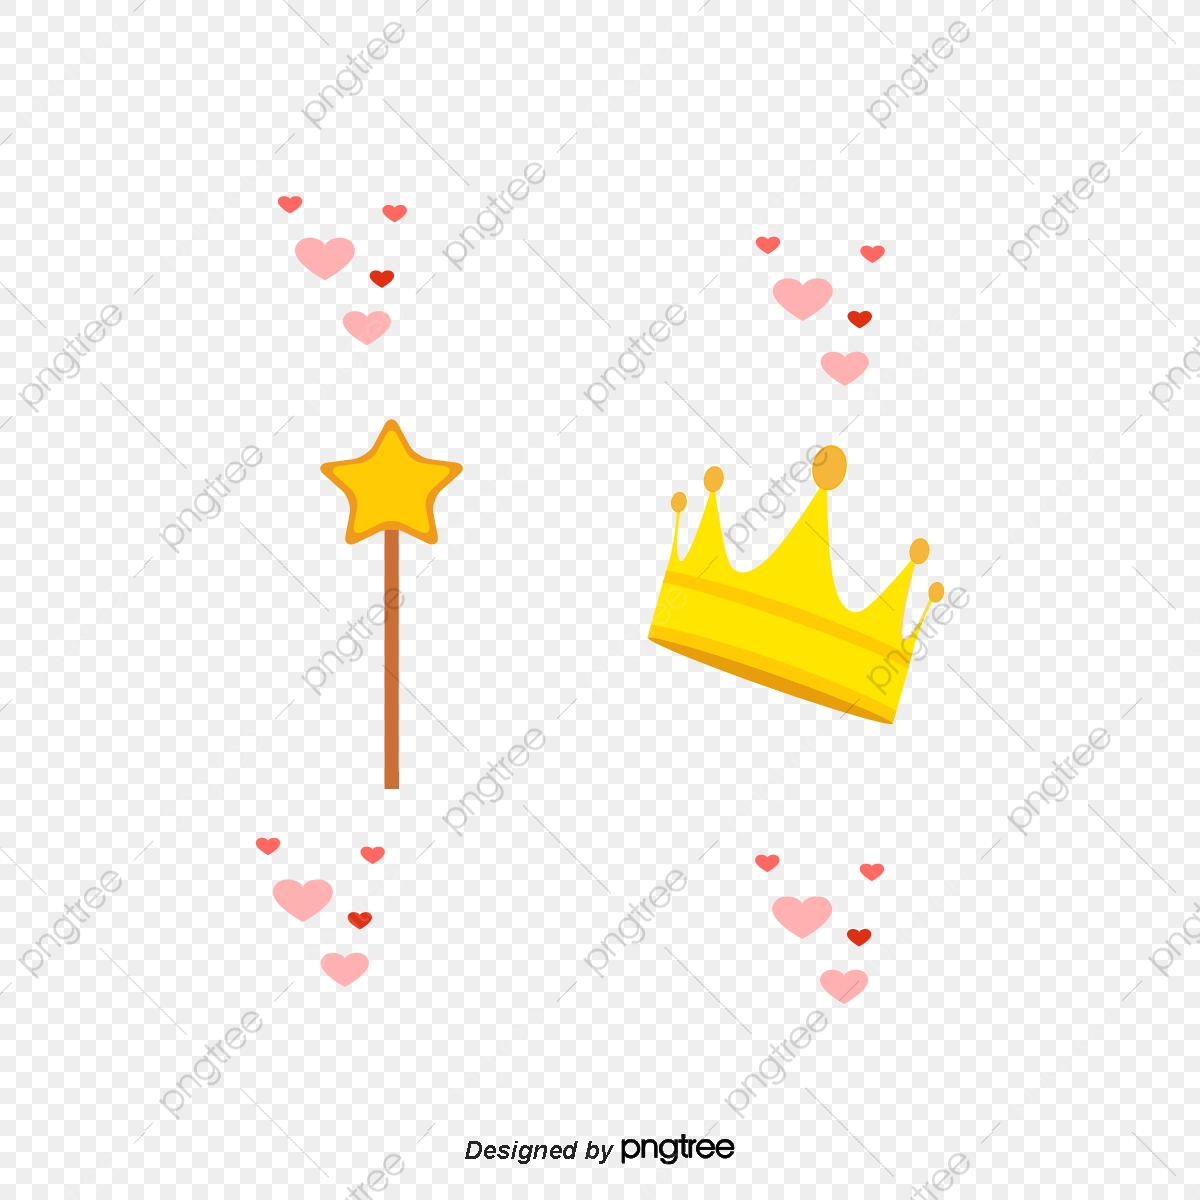 Yellow Cartoon Crown Star Stick Embellishment Cartoon Ambience Ornament Png And Vector With Transparent Background For Free Download Download now for free this cartoon crown clipart transparent png picture with no background. https pngtree com freepng yellow cartoon crown star stick embellishment 4283161 html